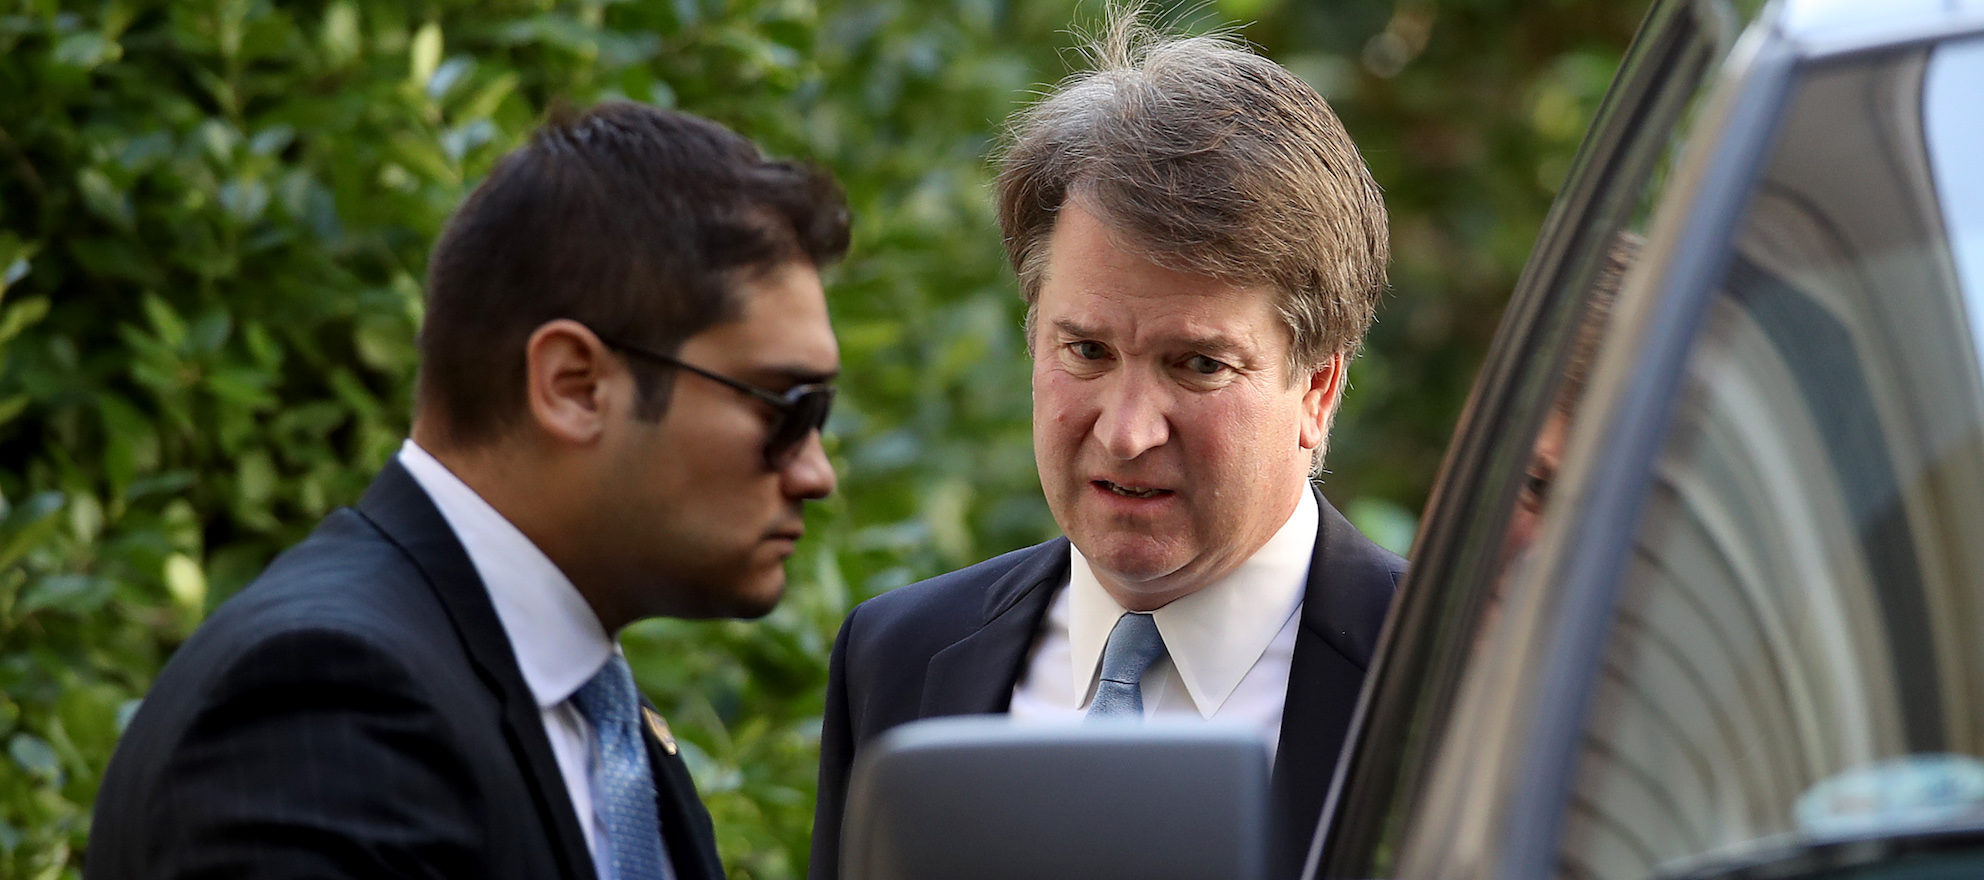 Zillow dragged into the spotlight after lawyer tries to use it to prove Brett Kavanaugh's innocence